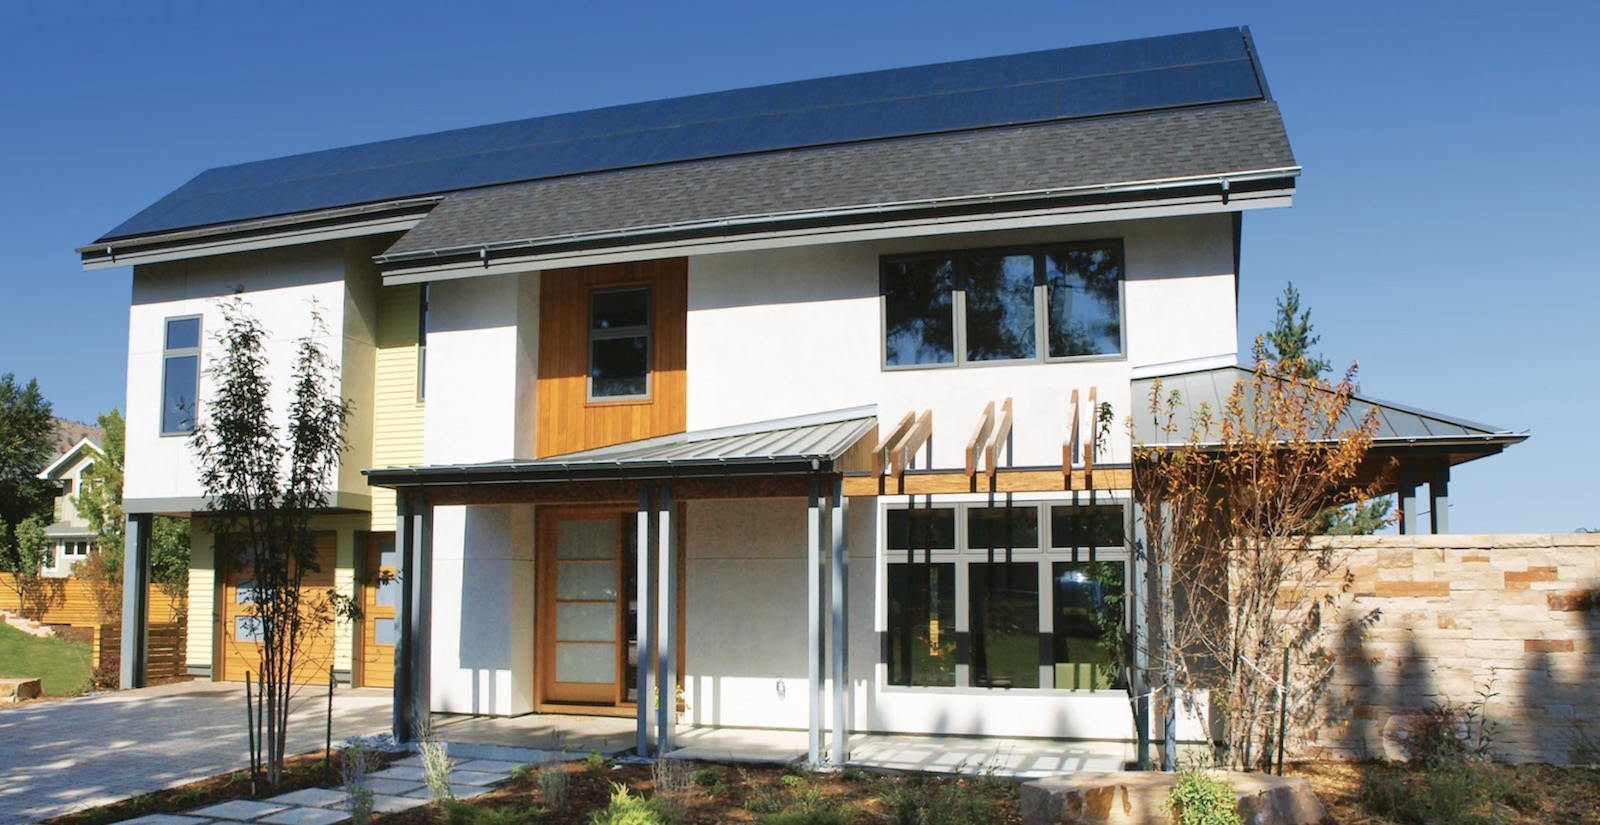 LEED Platinum home with high-performance features in Boulder, Colorado